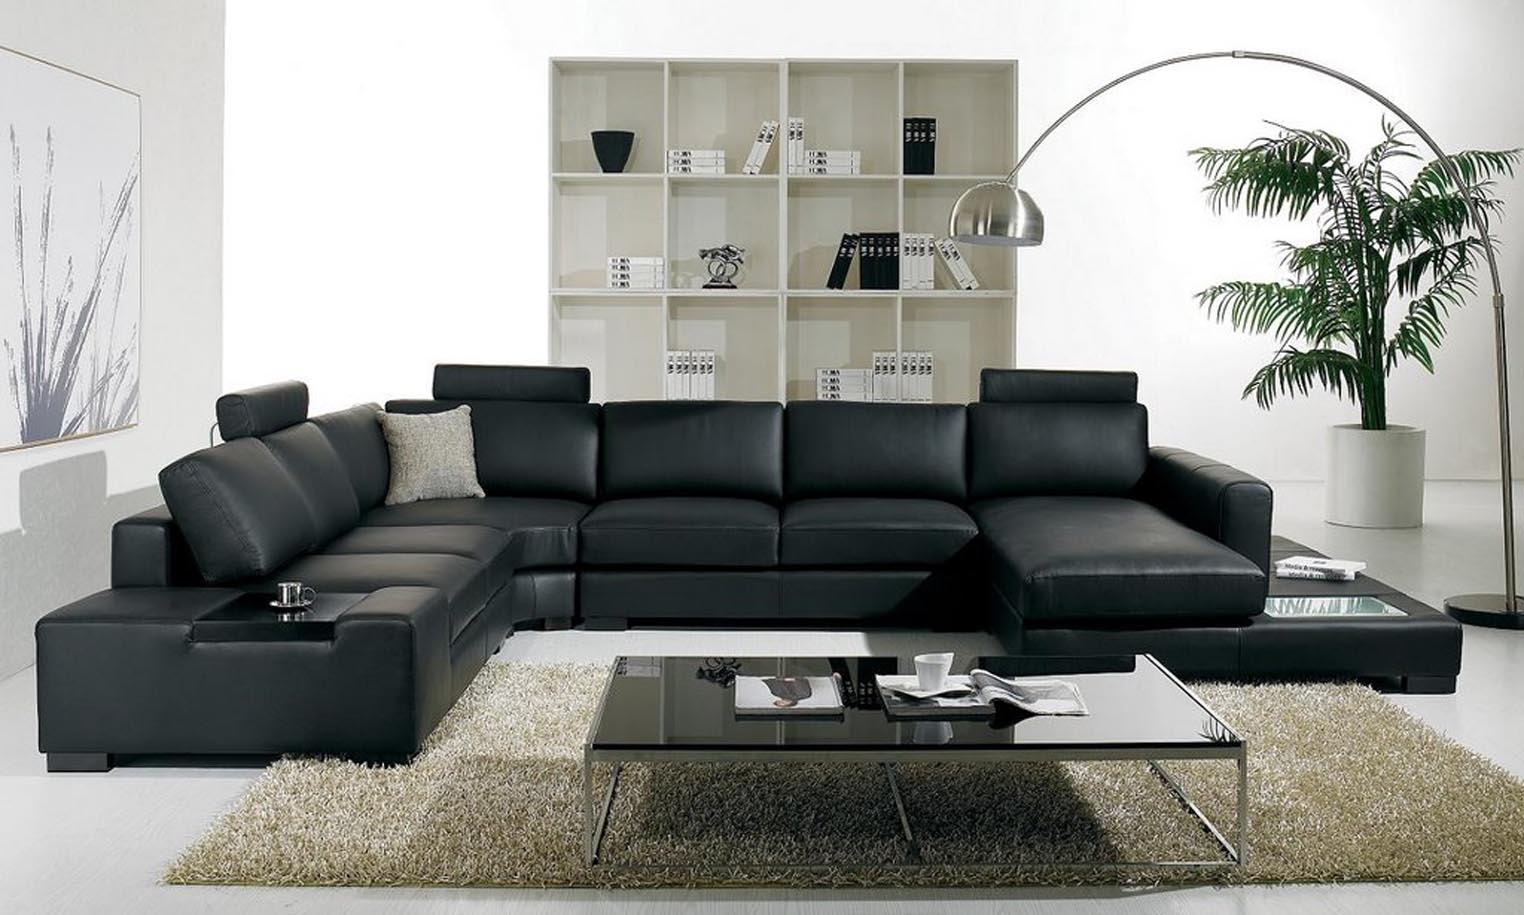 VIEW IN GALLERY Luxury Black Leather Sectional Sofa For Living Room  Interior Decoration With Cool Glass Top Coffee Table. Black Leather Sofa Sets Inspiring Ideas for Living Room   hgnv